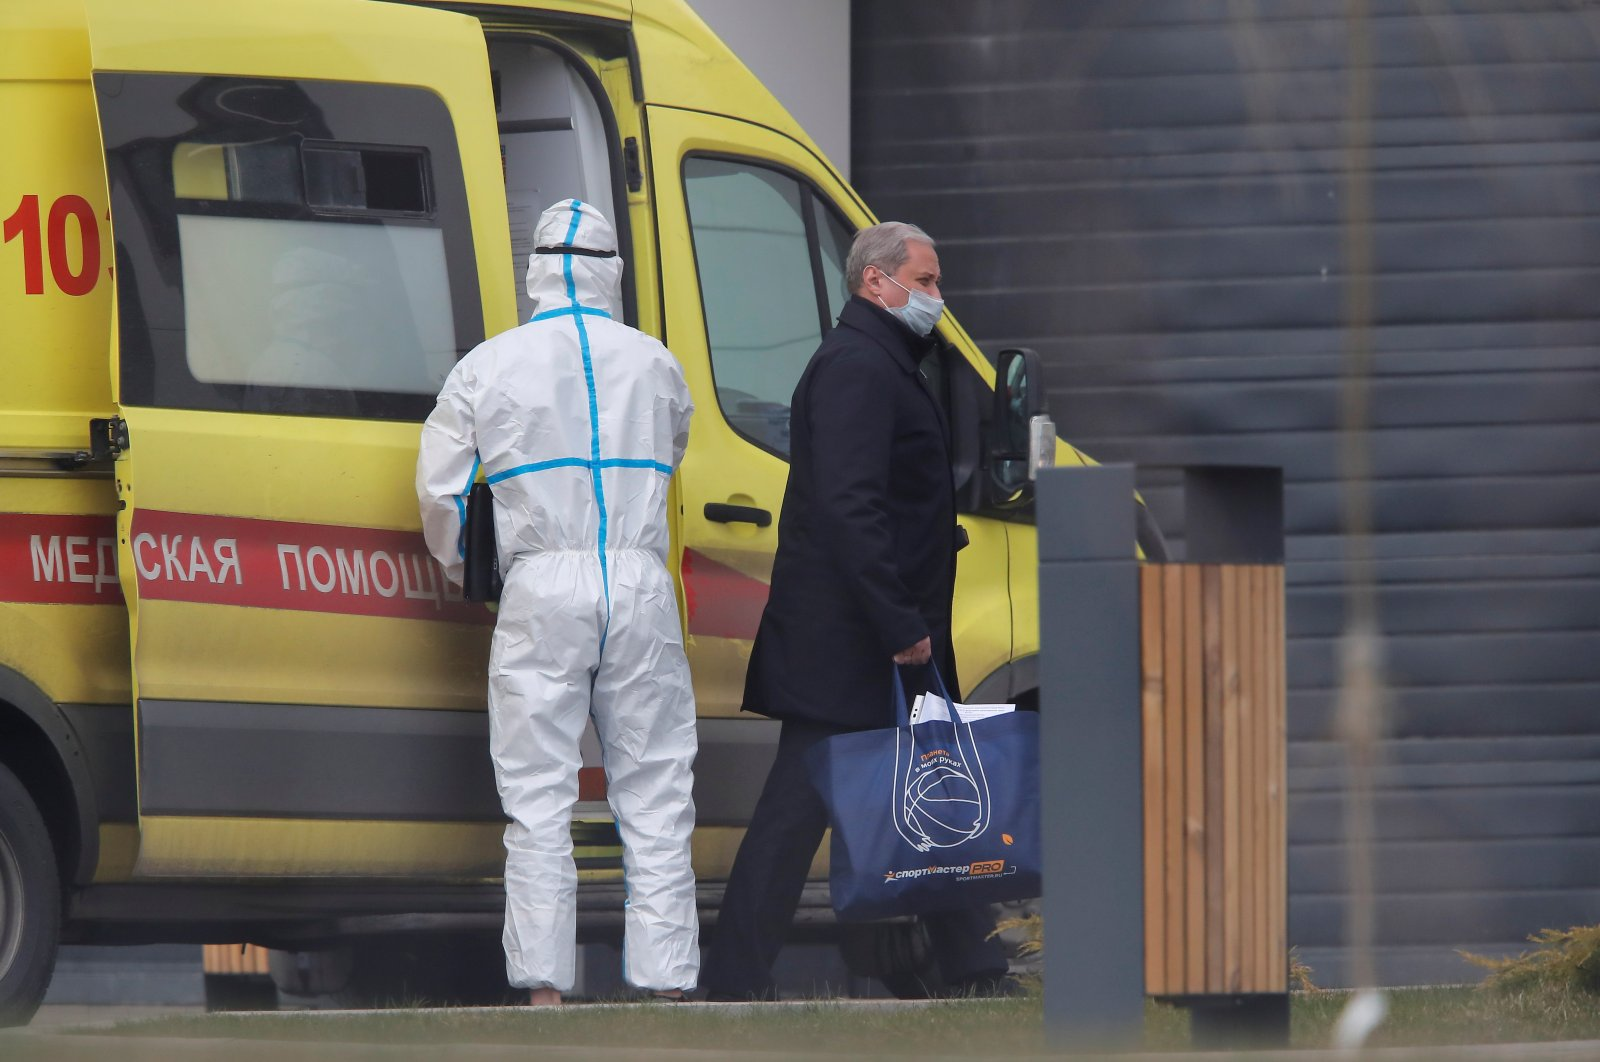 A man wearing a protective mask walks out of an ambulance upon the arrival at a hospital for patients infected with the coronavirus disease (COVID-19) on the outskirts of Moscow, Russia April 20, 2020. (Reuters Photo)